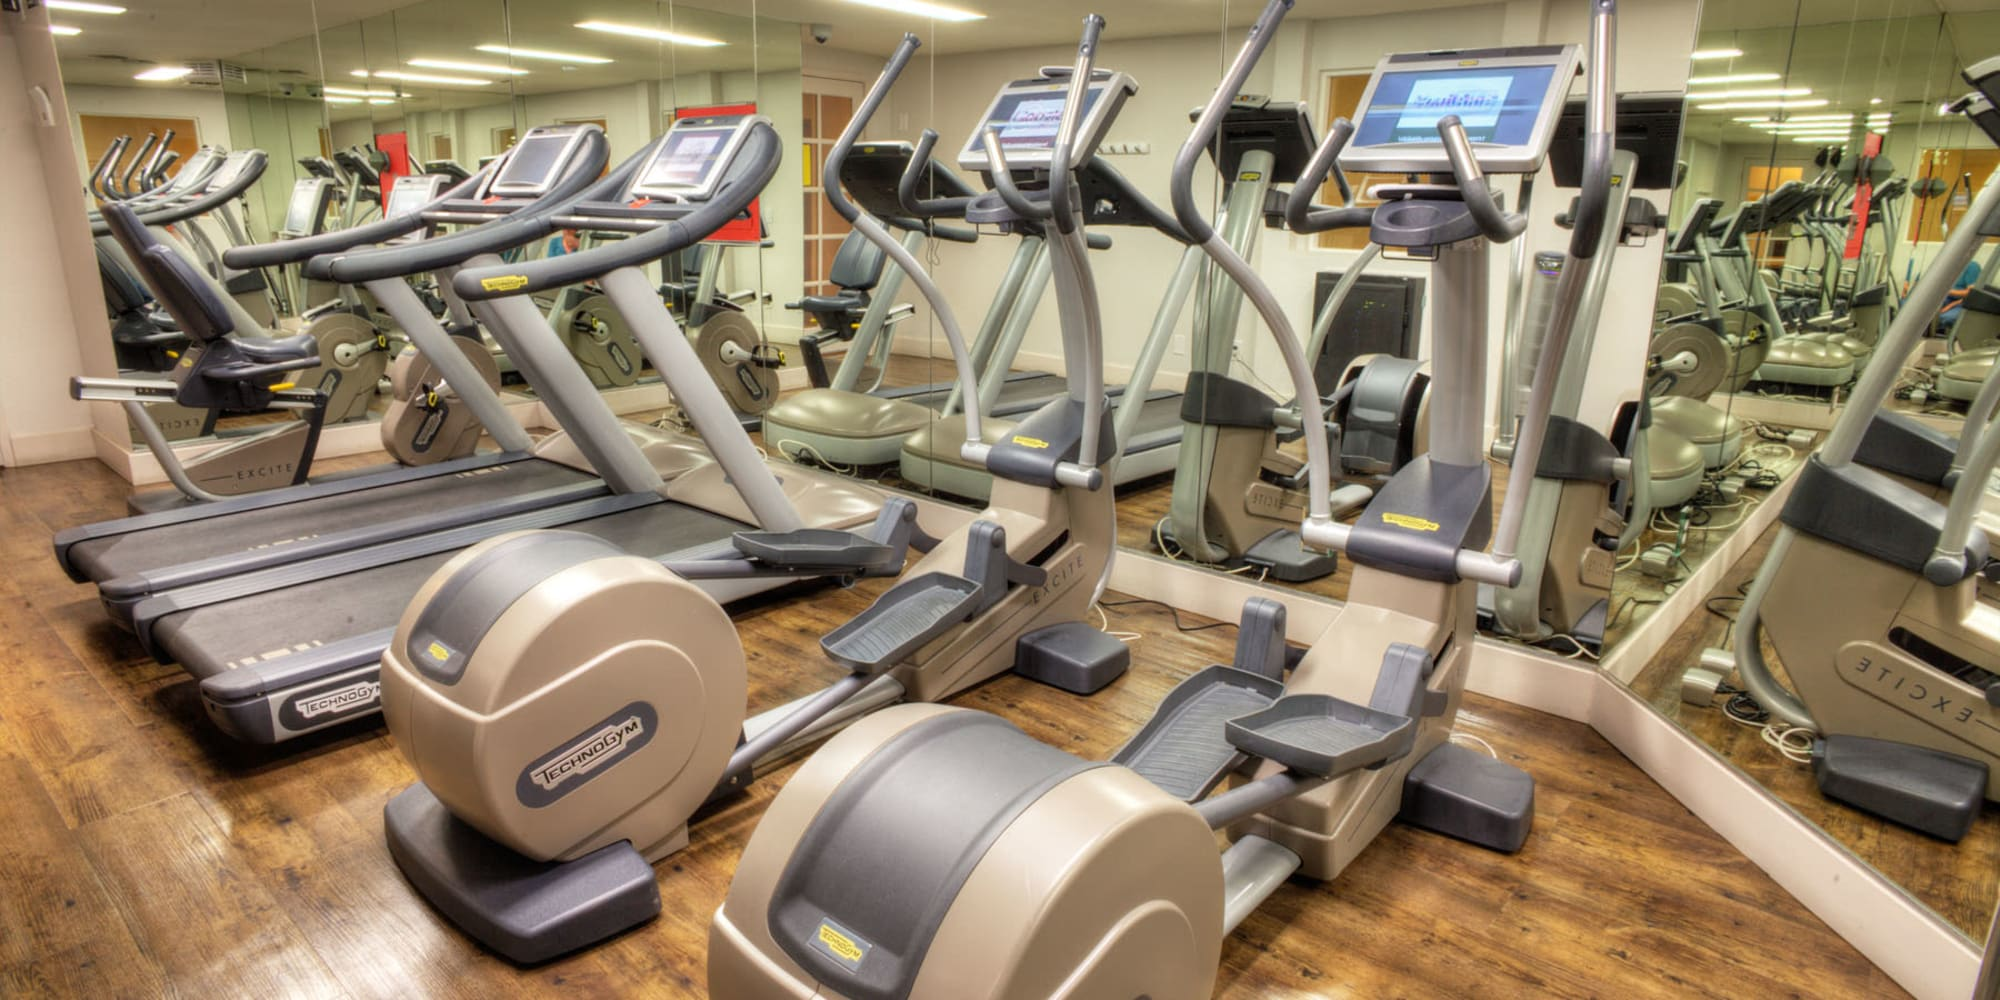 Well-equipped fitness center with ample cardio equipment at Sunset Barrington Gardens in Los Angeles, California